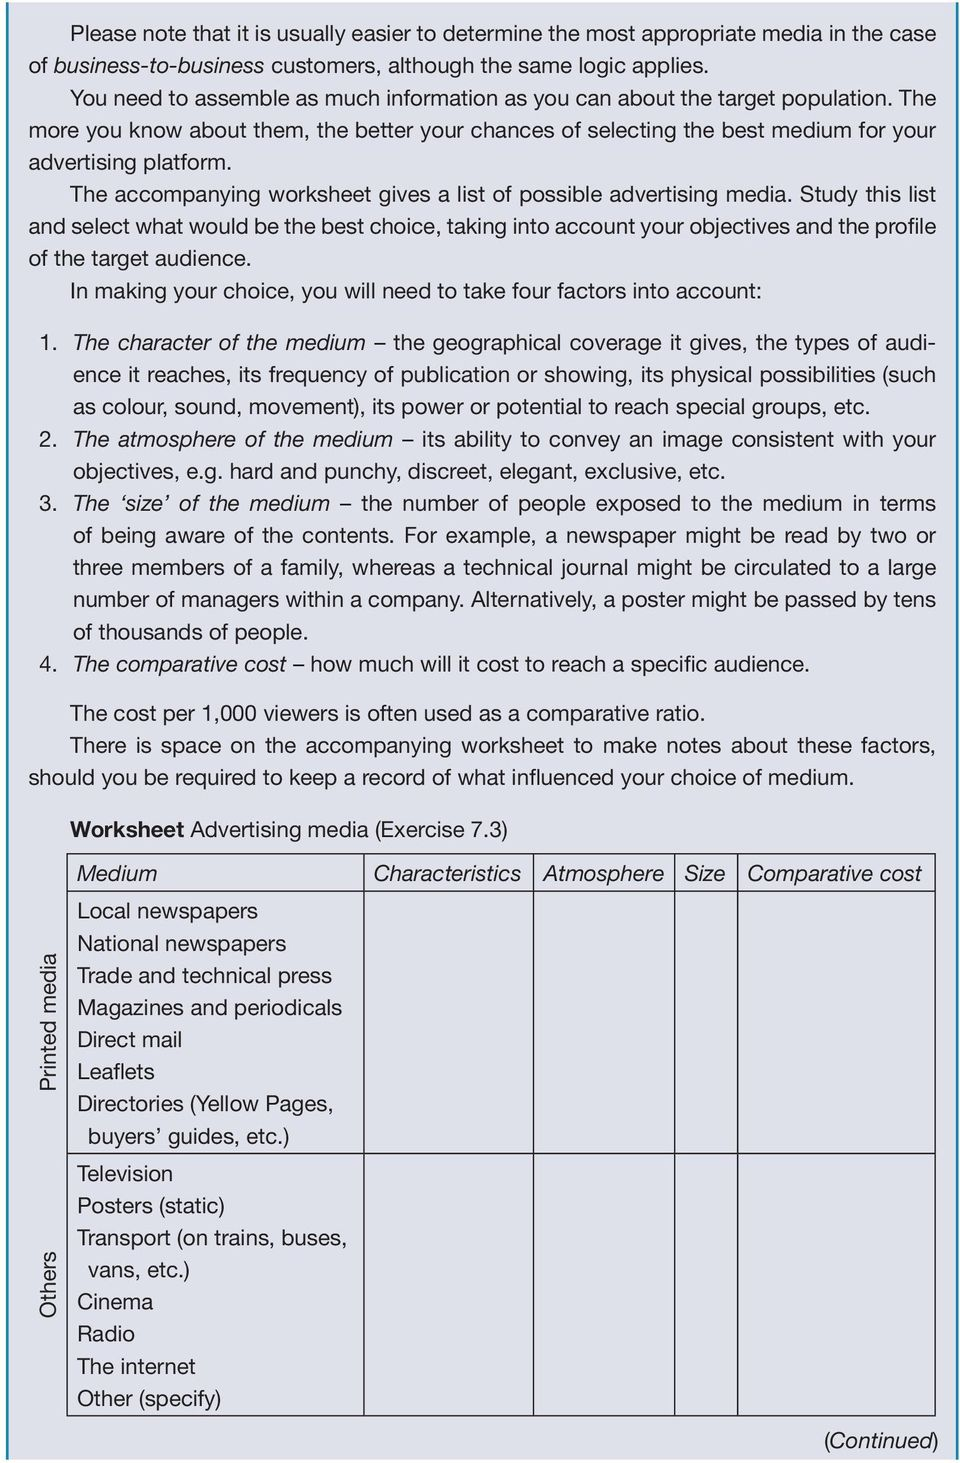 The accompanying worksheet gives a list of possible advertising media.